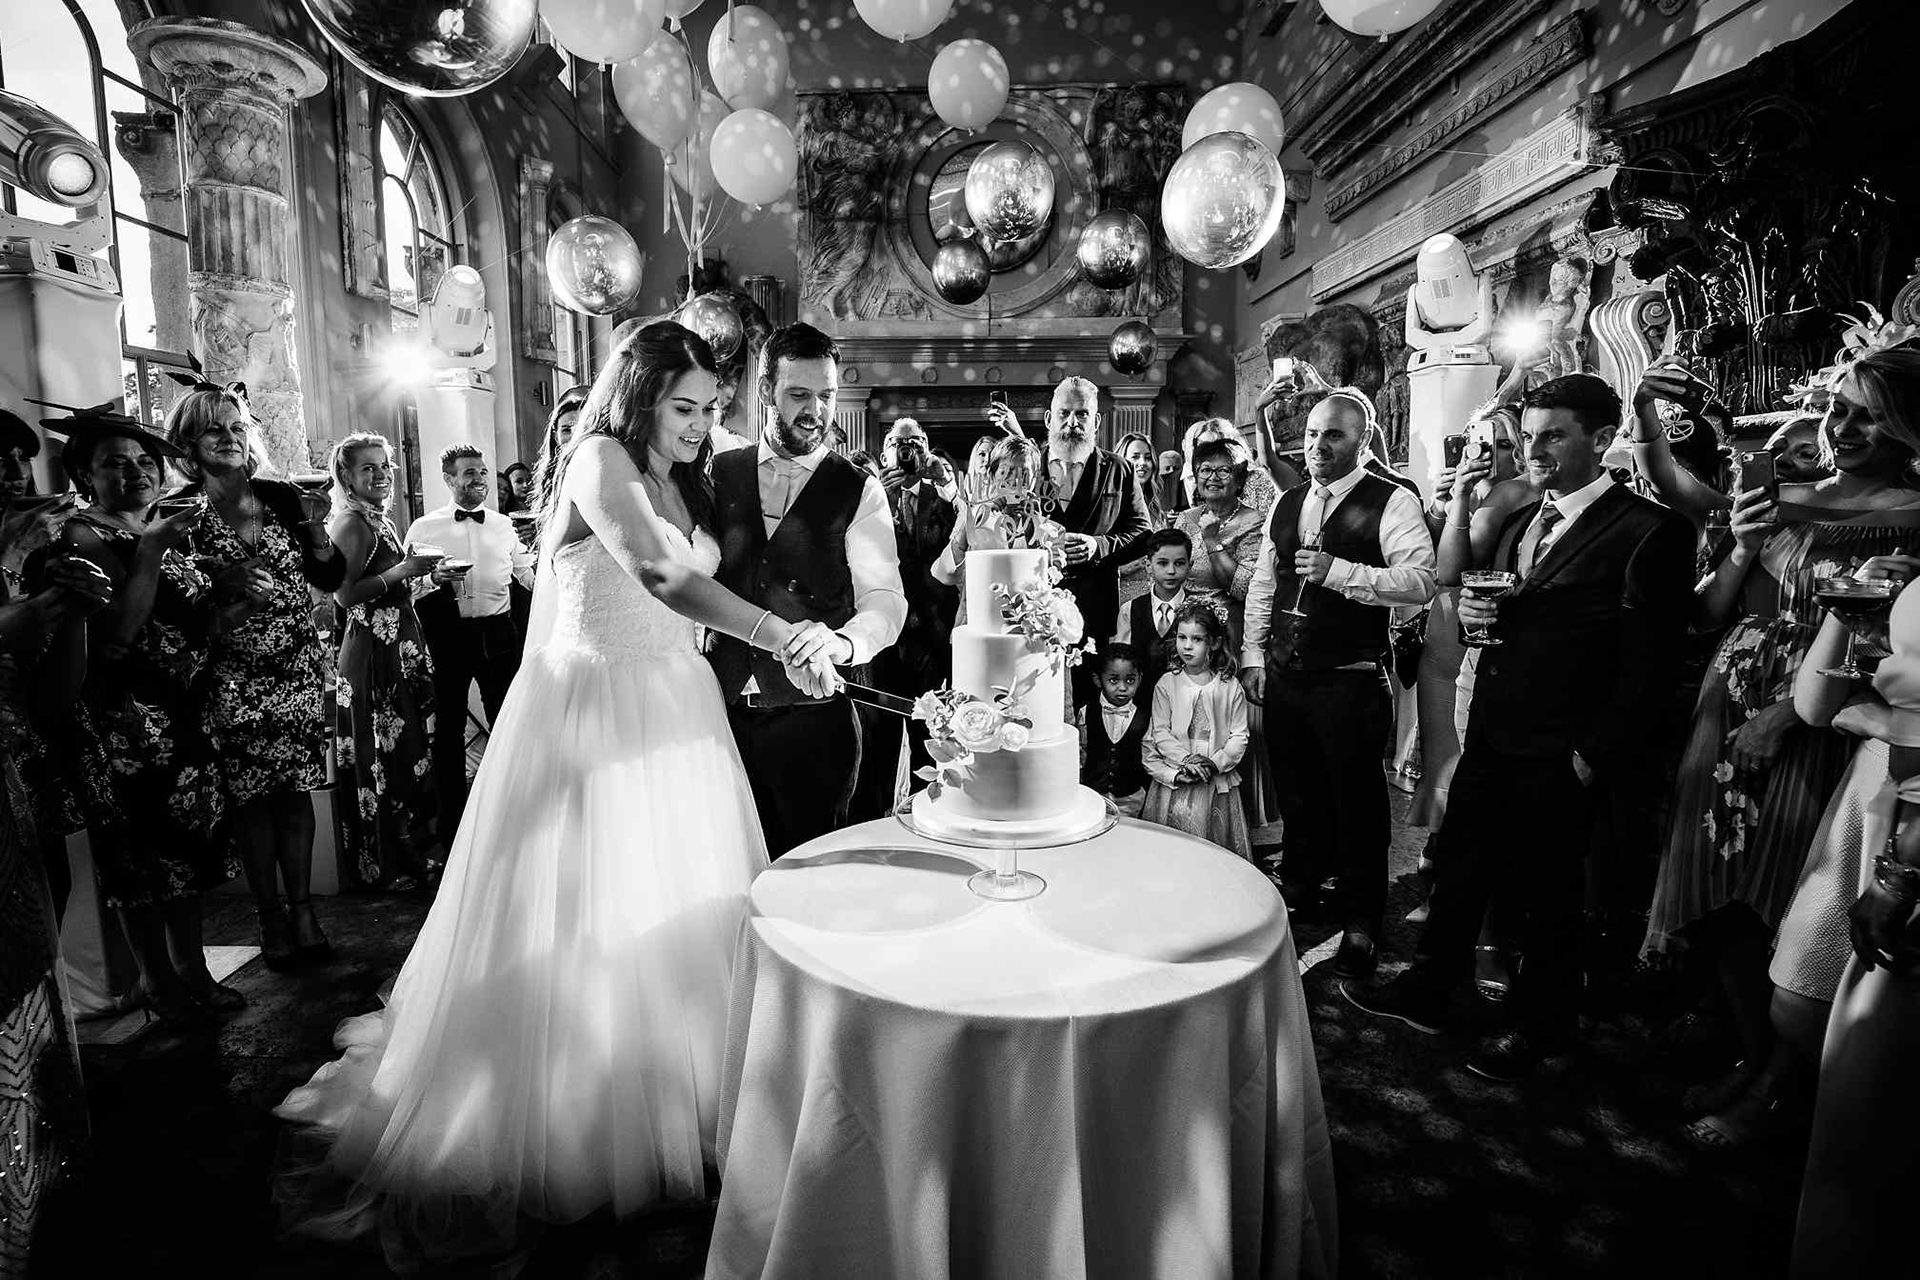 Wedding photography showing the bride and groom cutting the cake